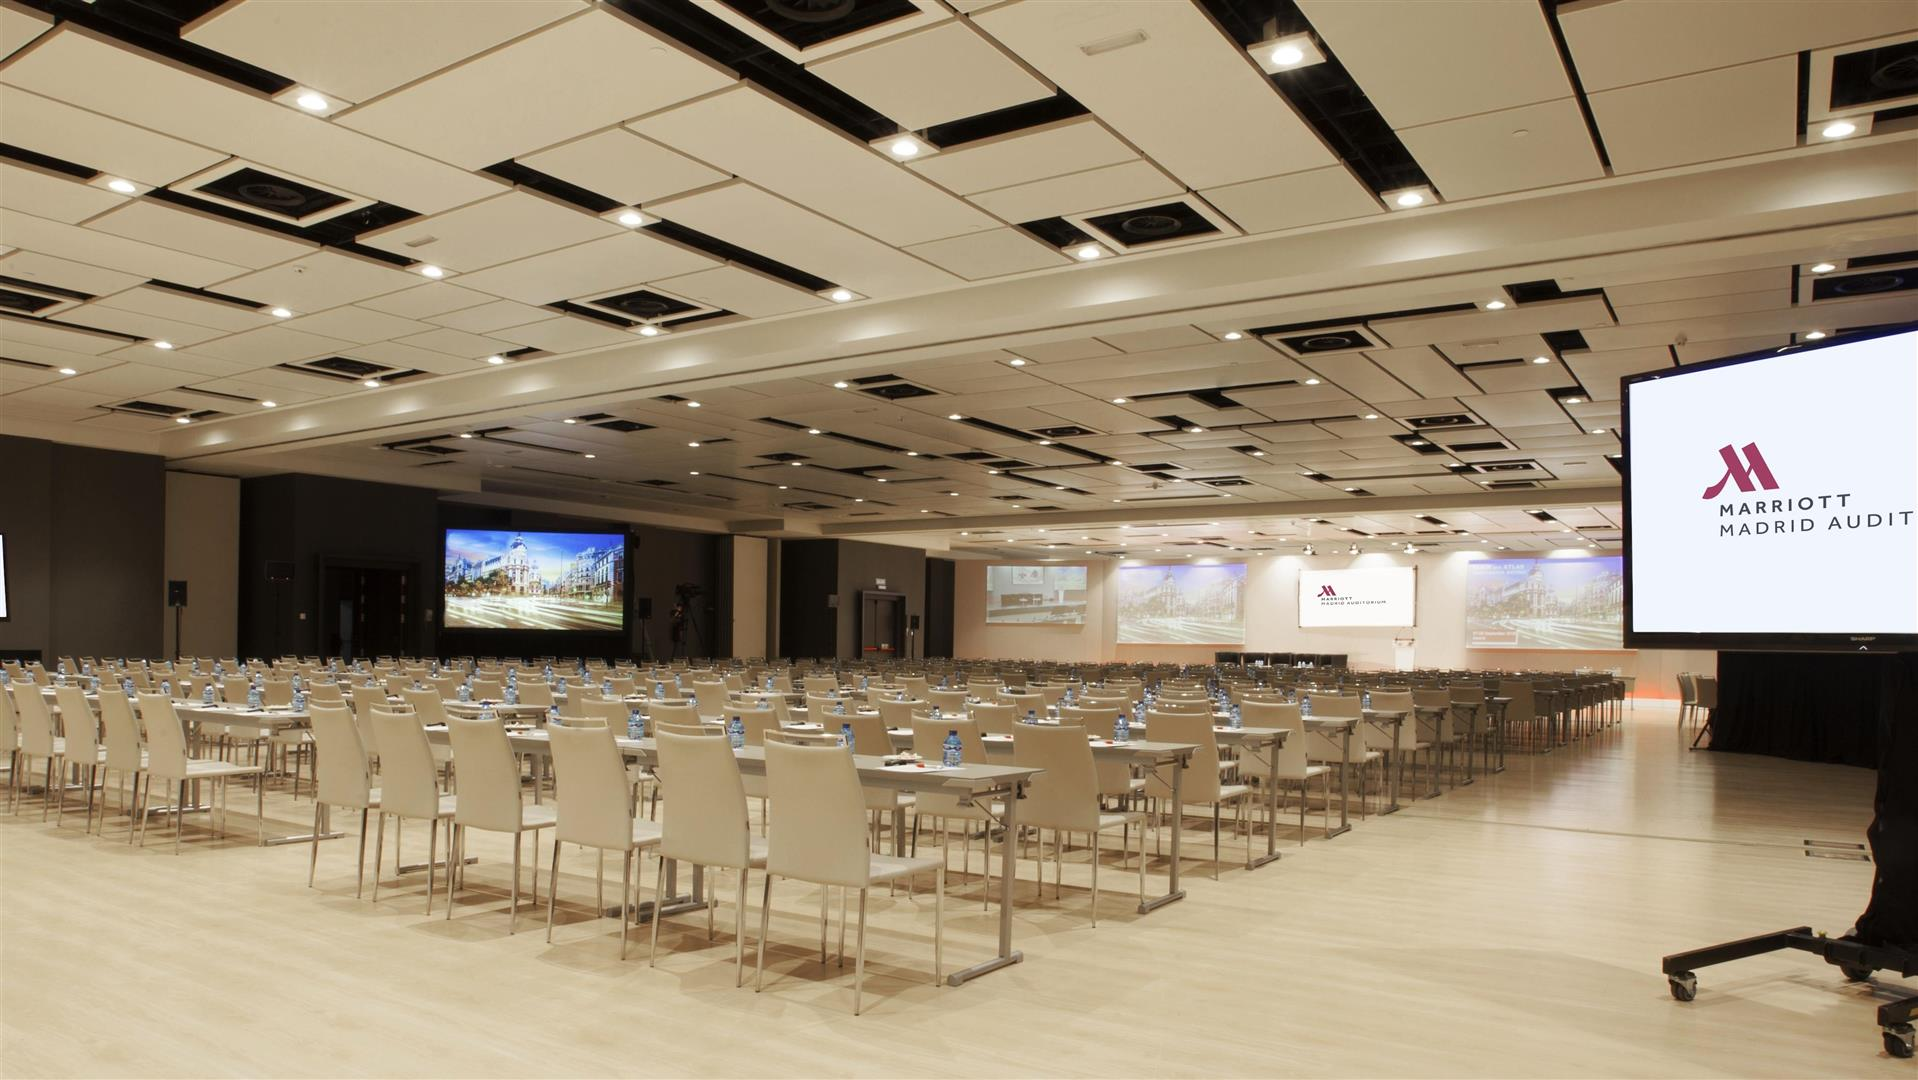 Meetings and events at Madrid Marriott Auditorium Hotel